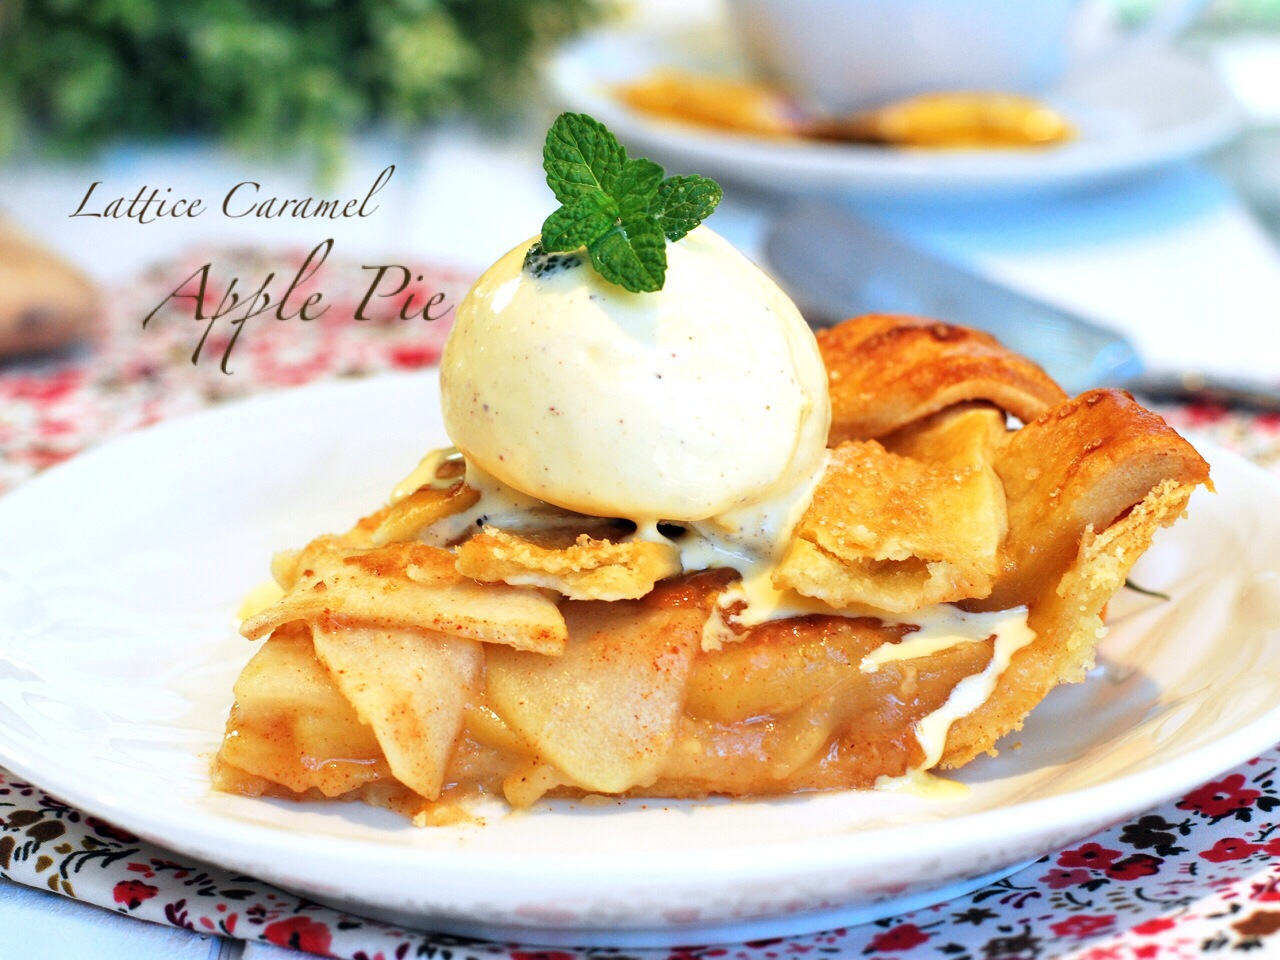 Lattice caramel apple pie